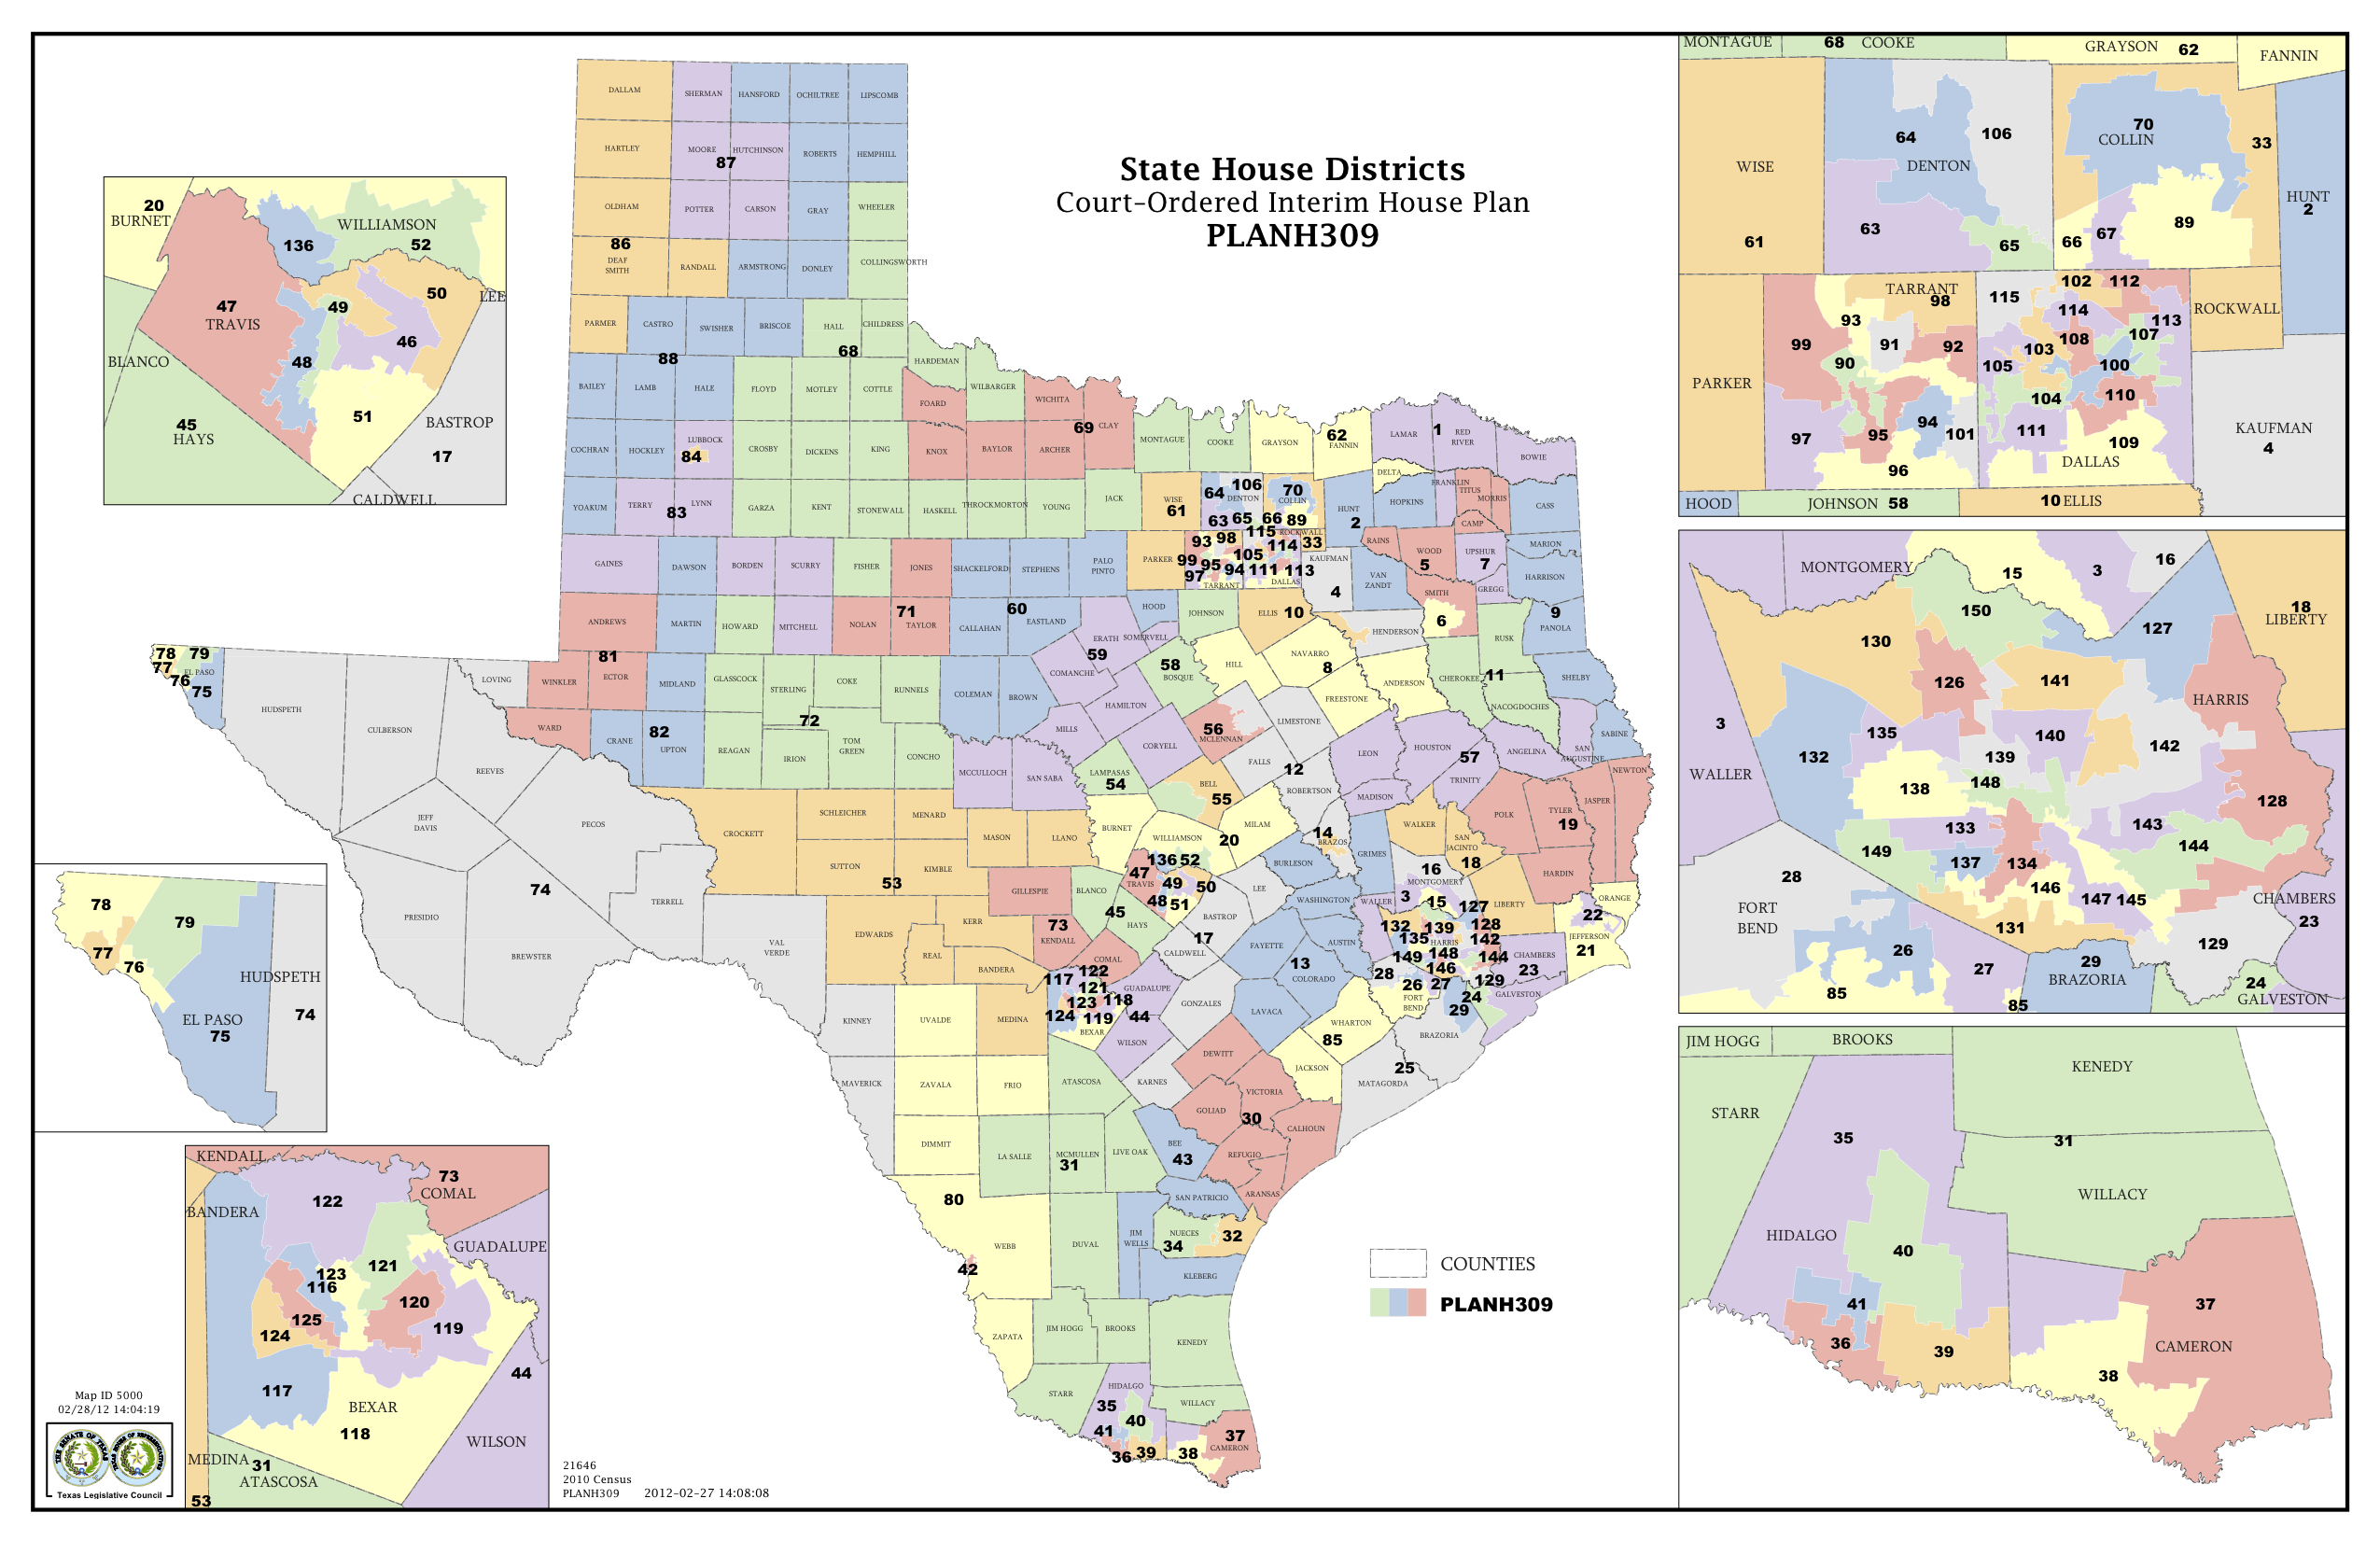 Texas House Districts Map | Business Ideas 2013 - Texas Congressional Districts Map 2016